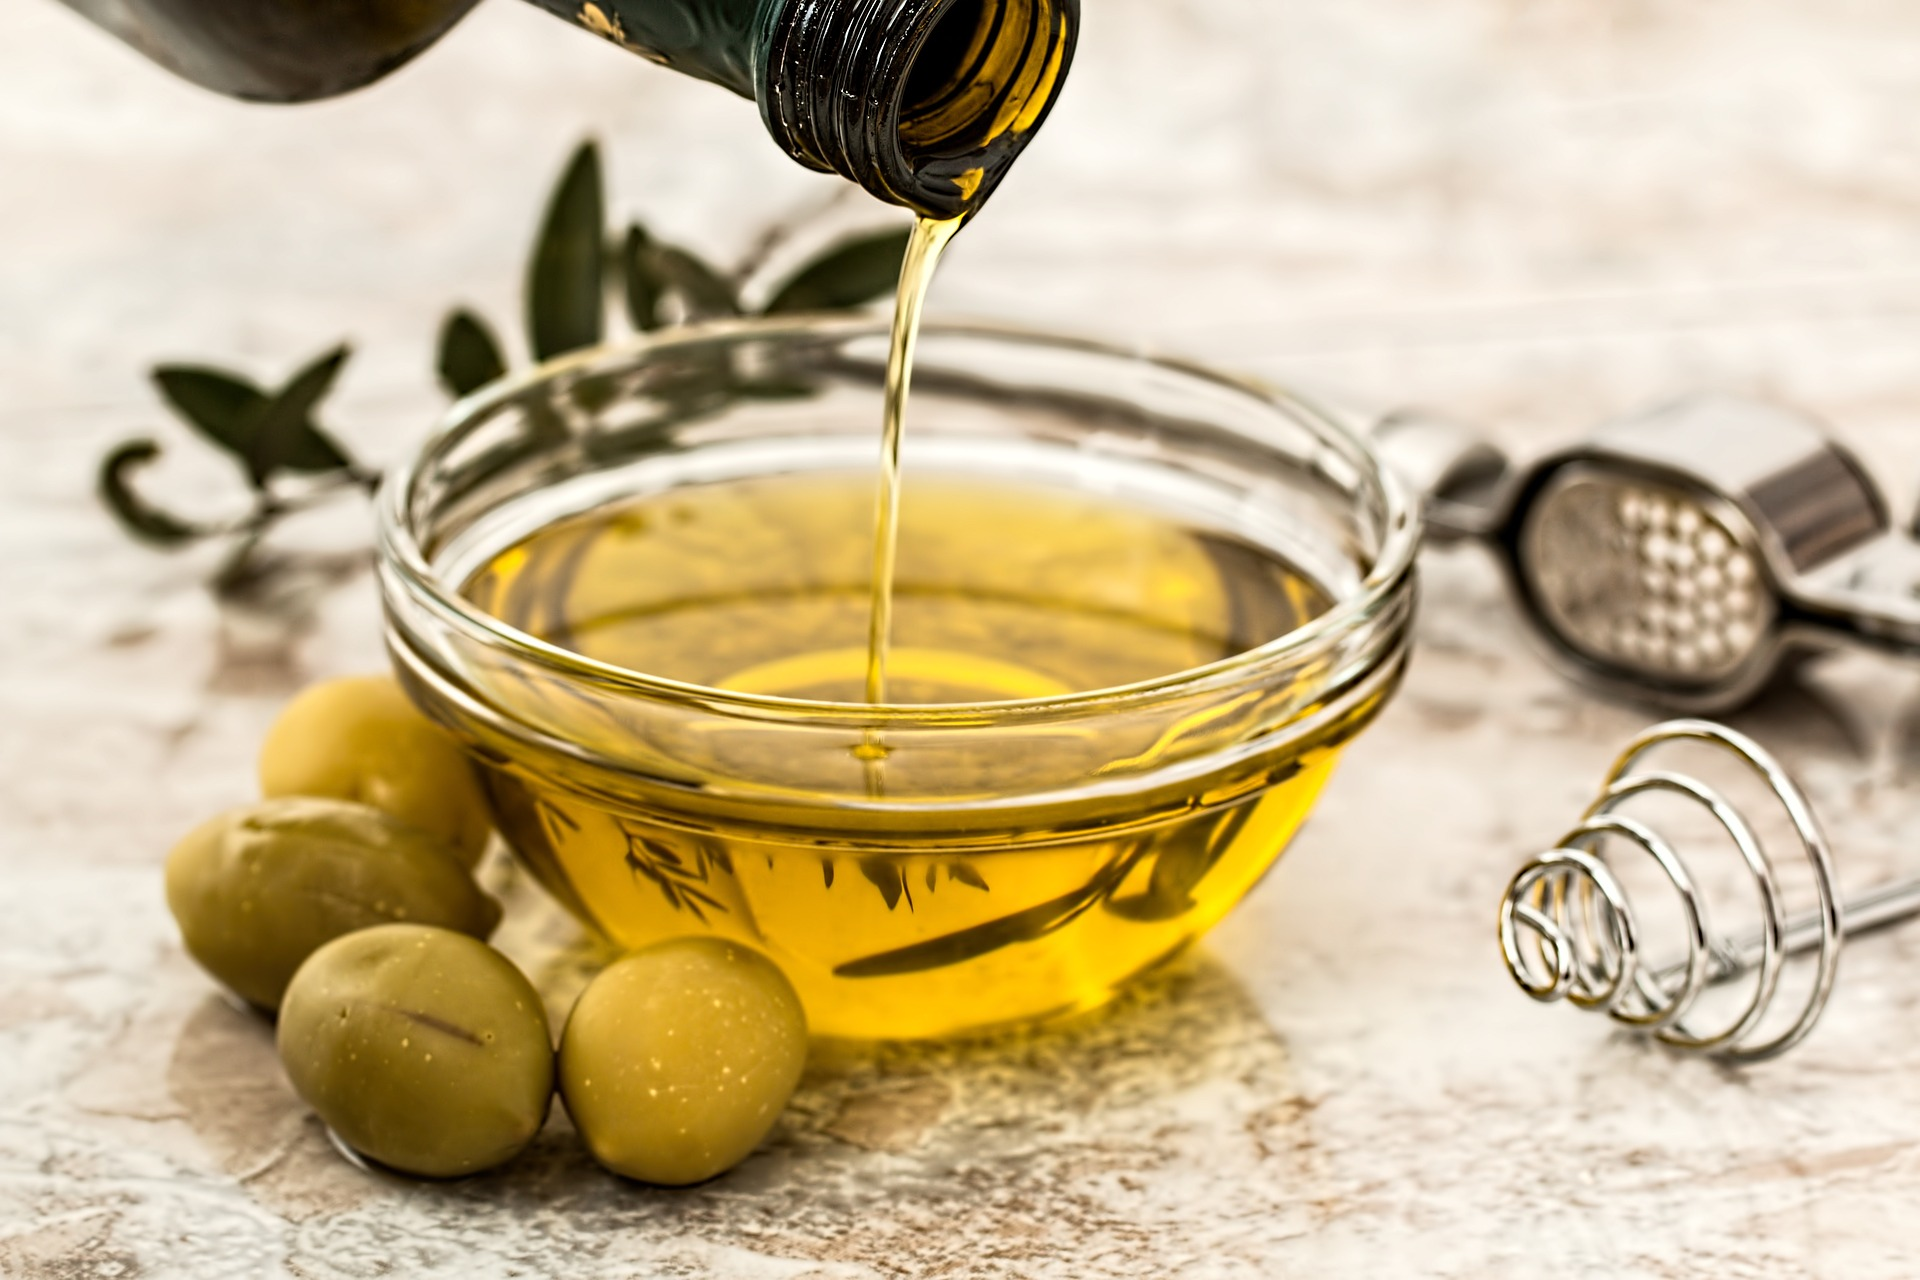 GOMAD vs. Olive Oil for Weight Gain